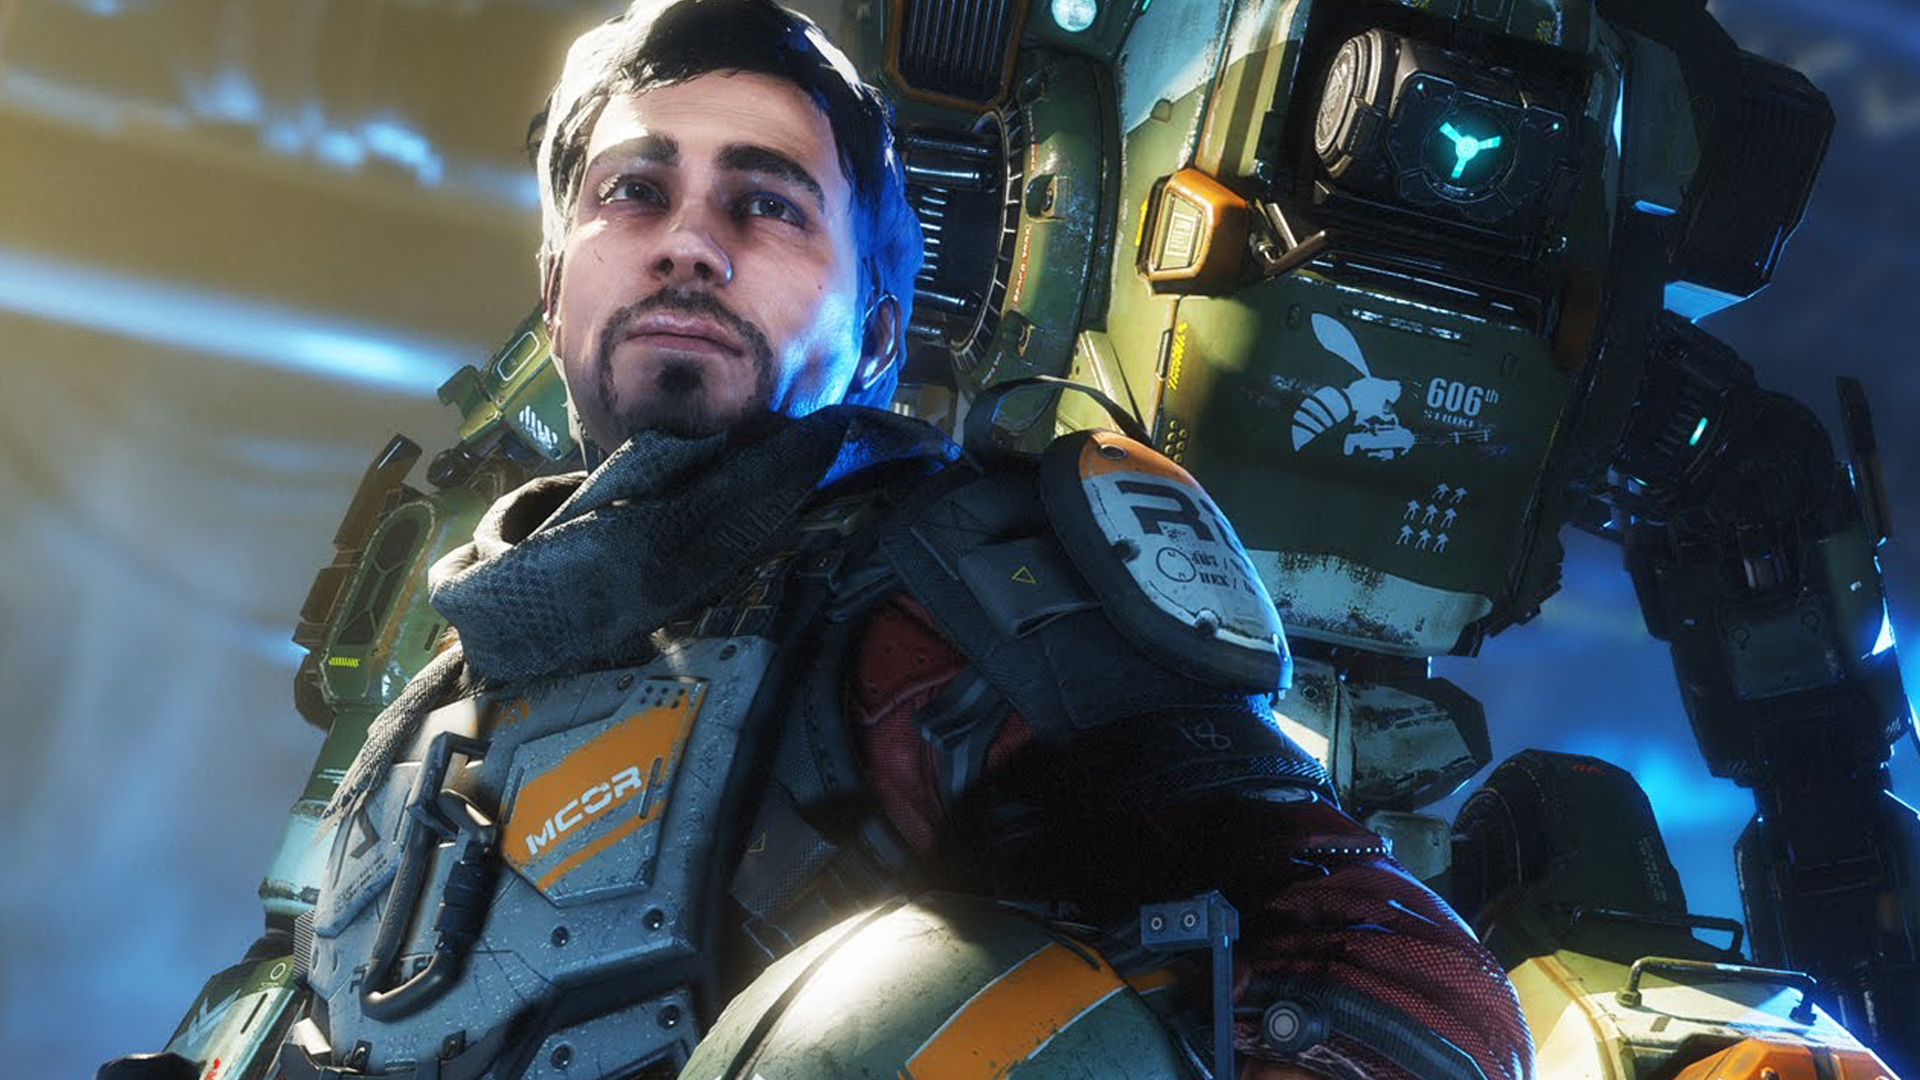 Video: Is Titanfall 2's single-player a worthy addition?